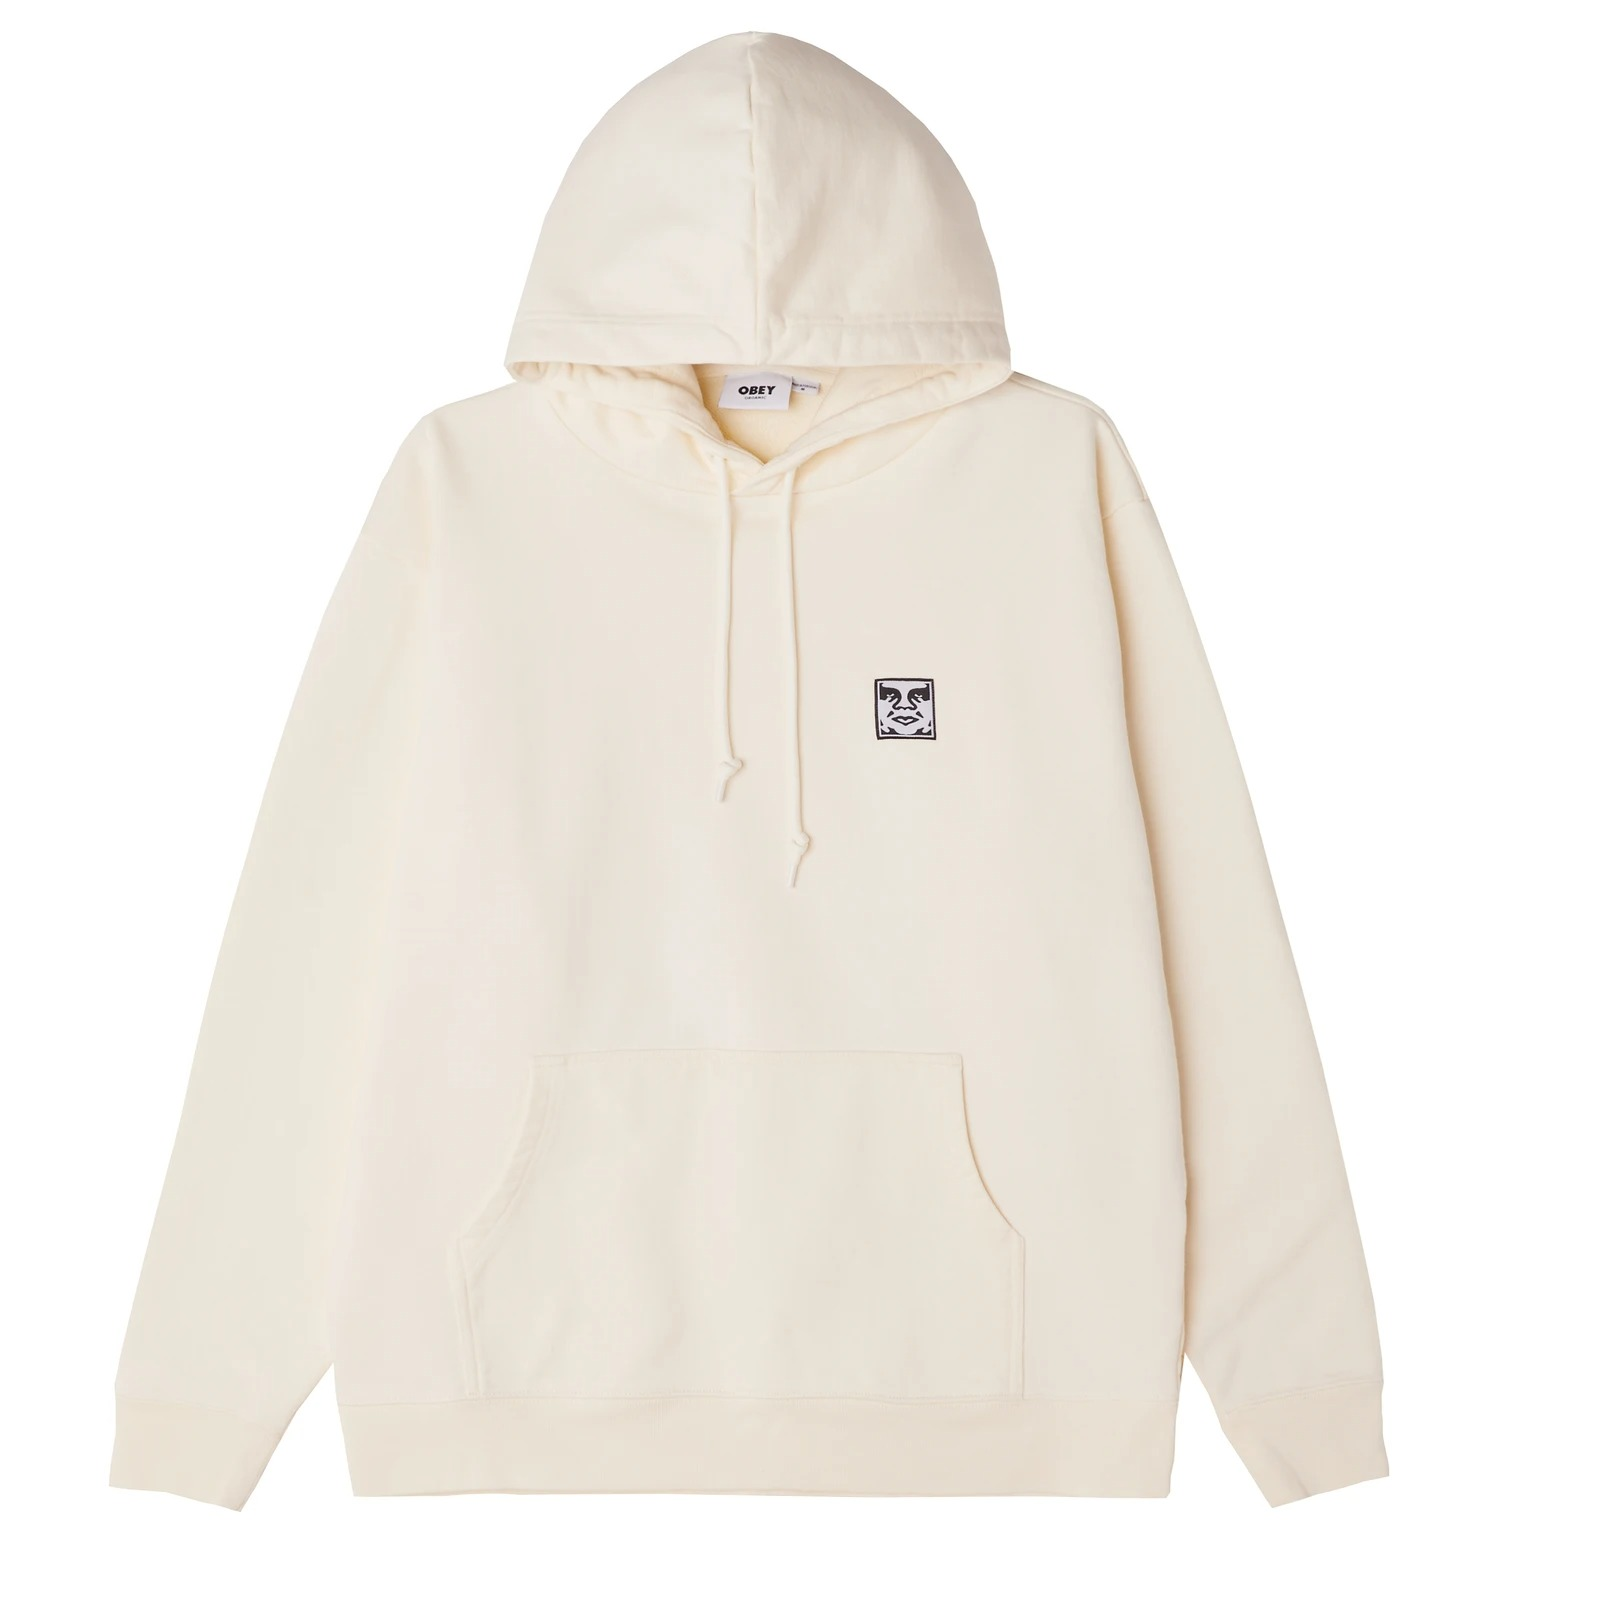 Obey Organic Icon Pullover hoodie in cream